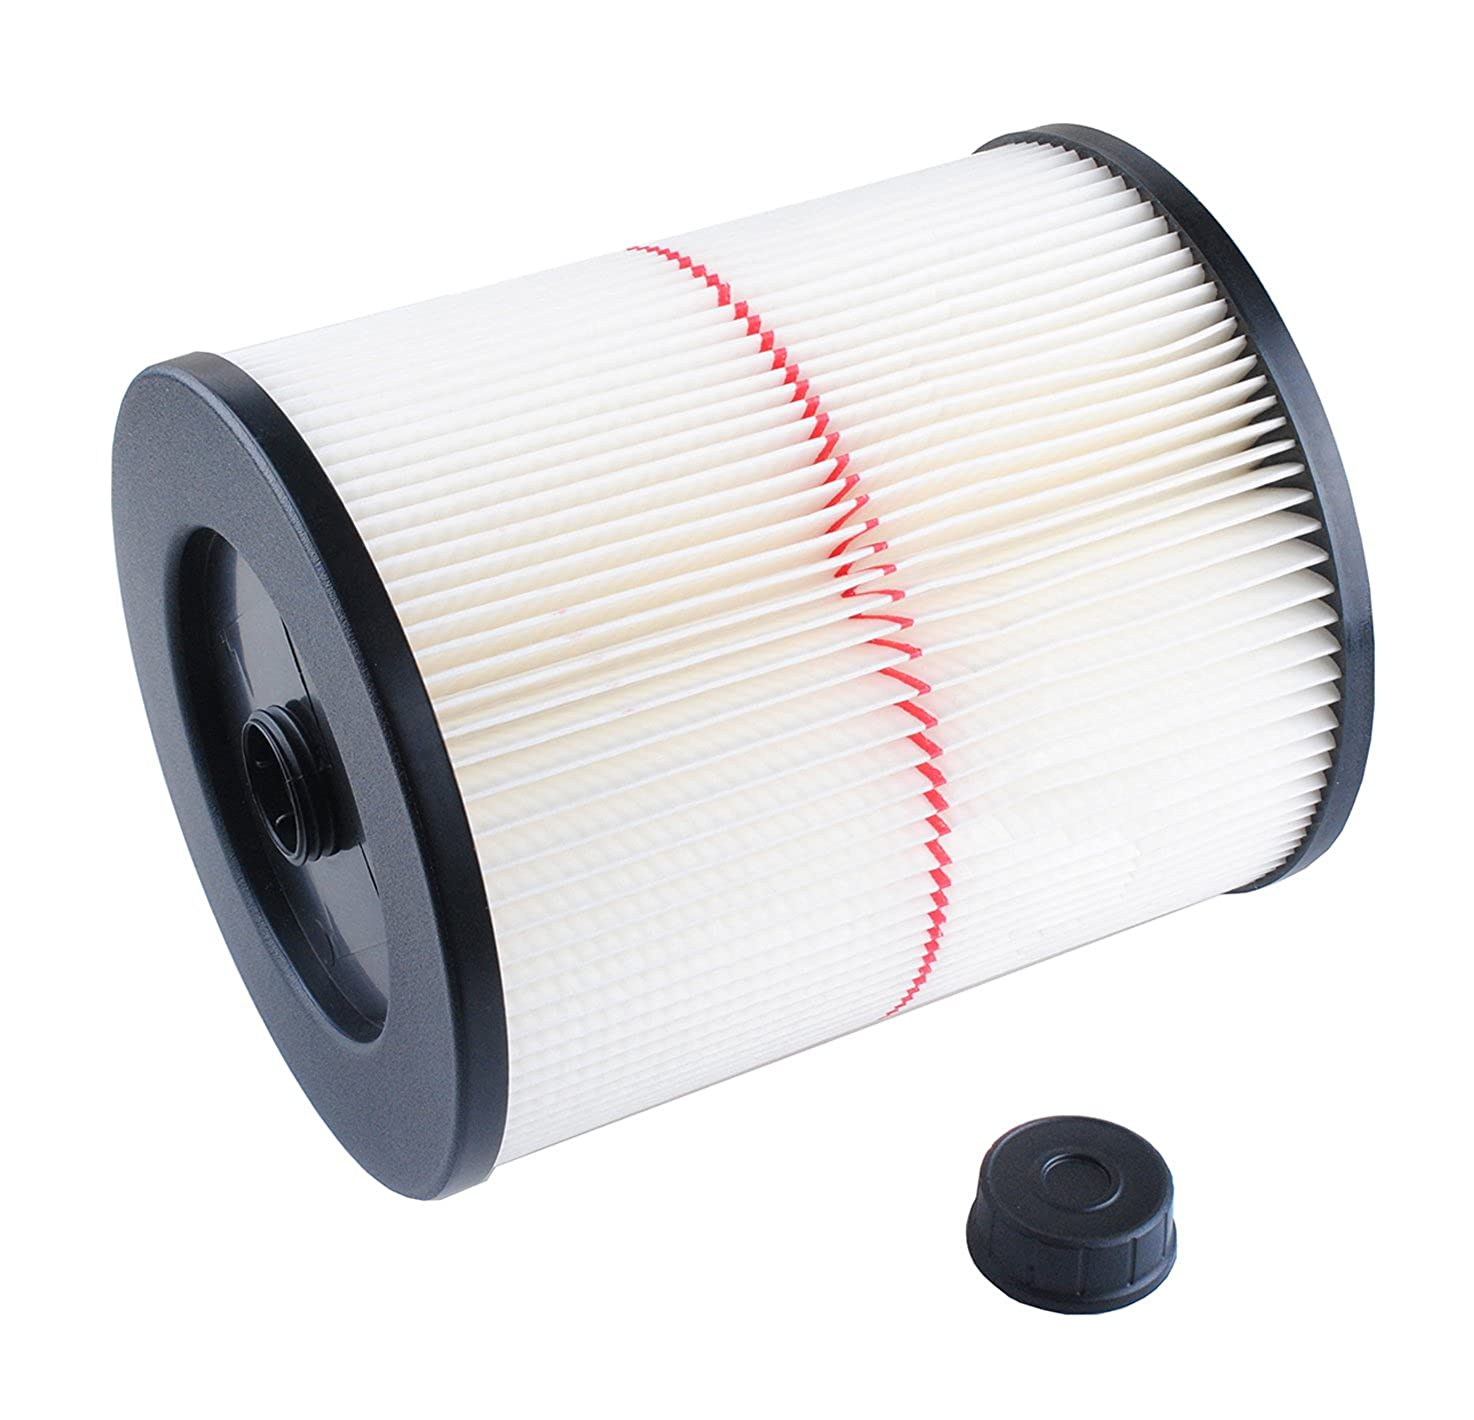 Wadoy 17816 Filter for Craftsman Shop Vac 917816, 9-17816 Wet Dry Vac Filter for 5 Gallon Vacuum Cleaner